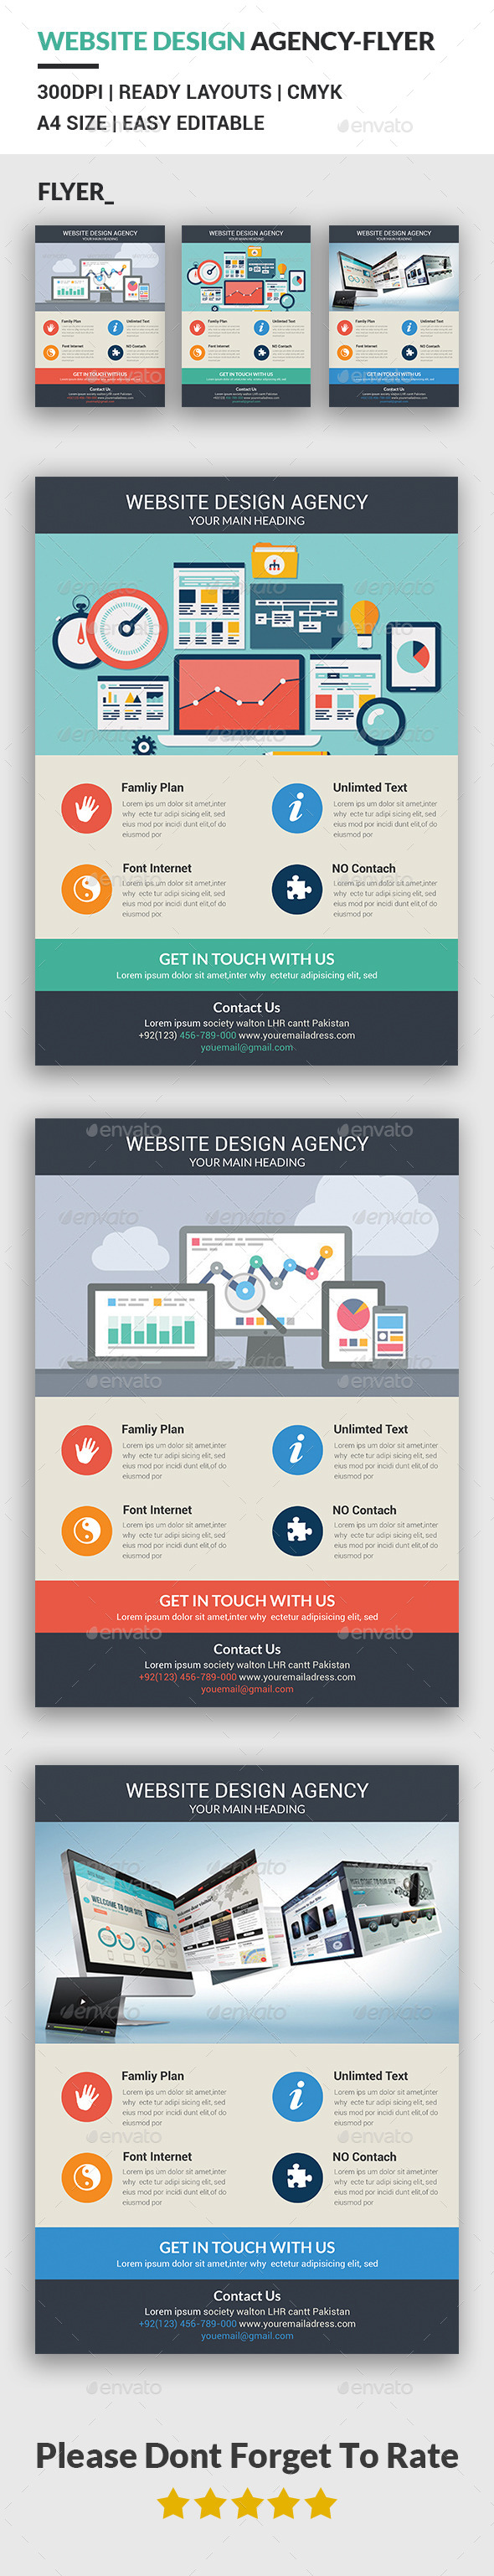 Website Design Agency Flyer Template - Corporate Flyers